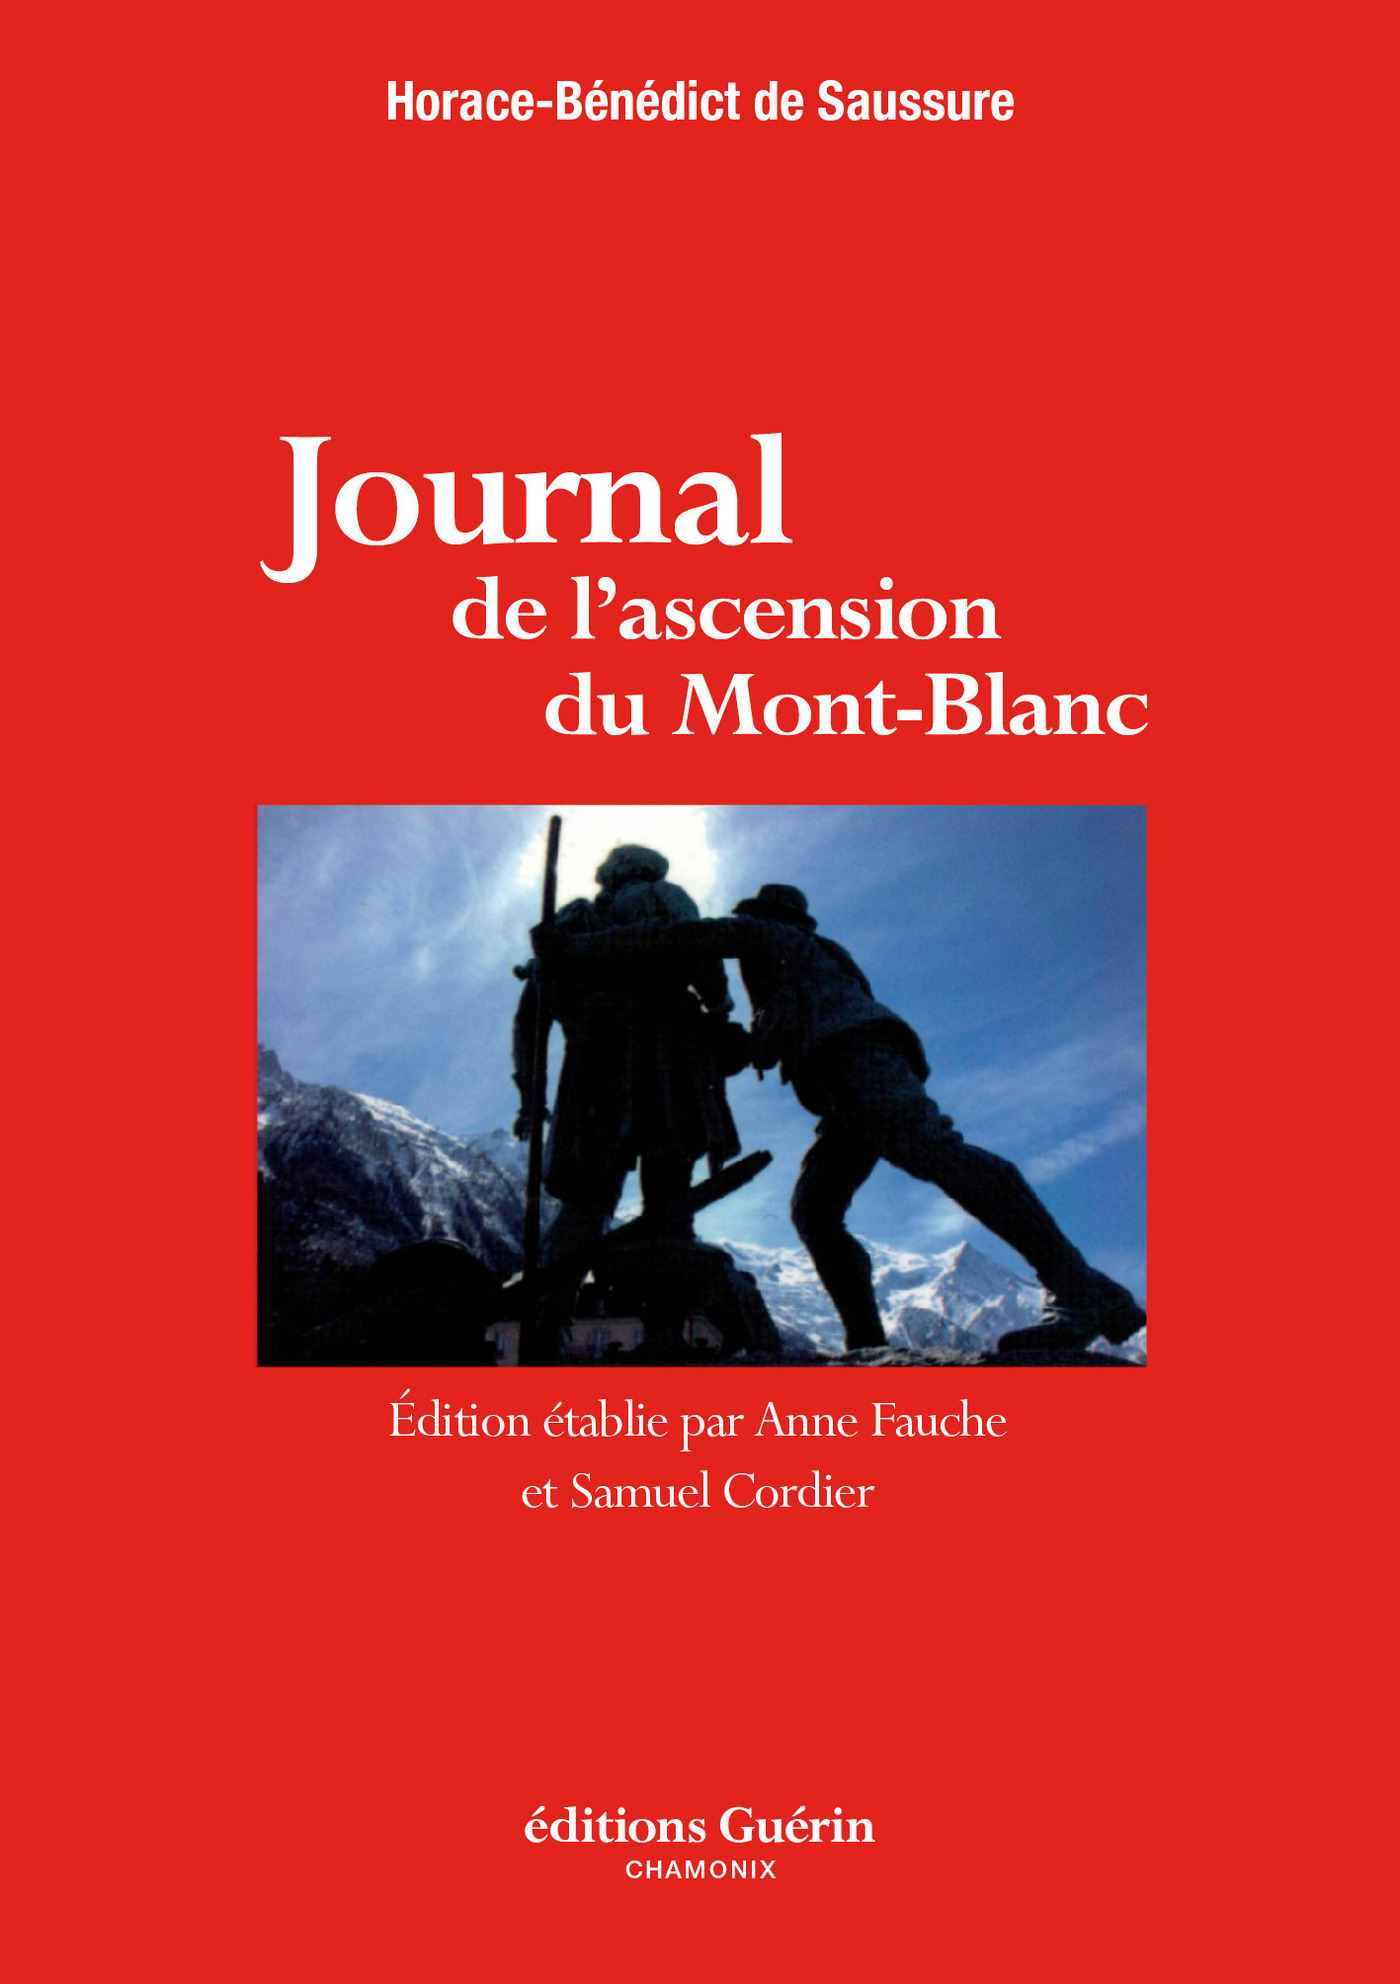 Journal de l'ascension du Mont-Blanc